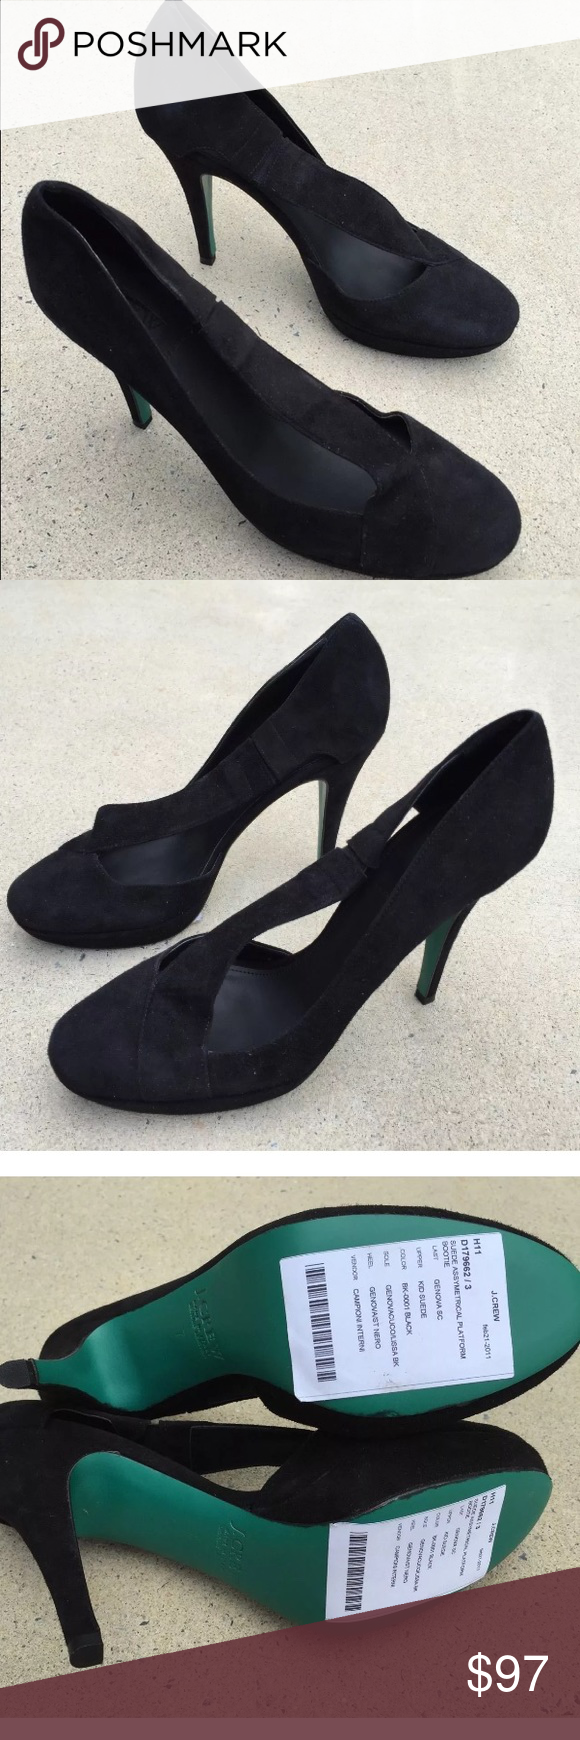 eea8839edaf J Crew Italy 7 black suede leather pumps heels New without box